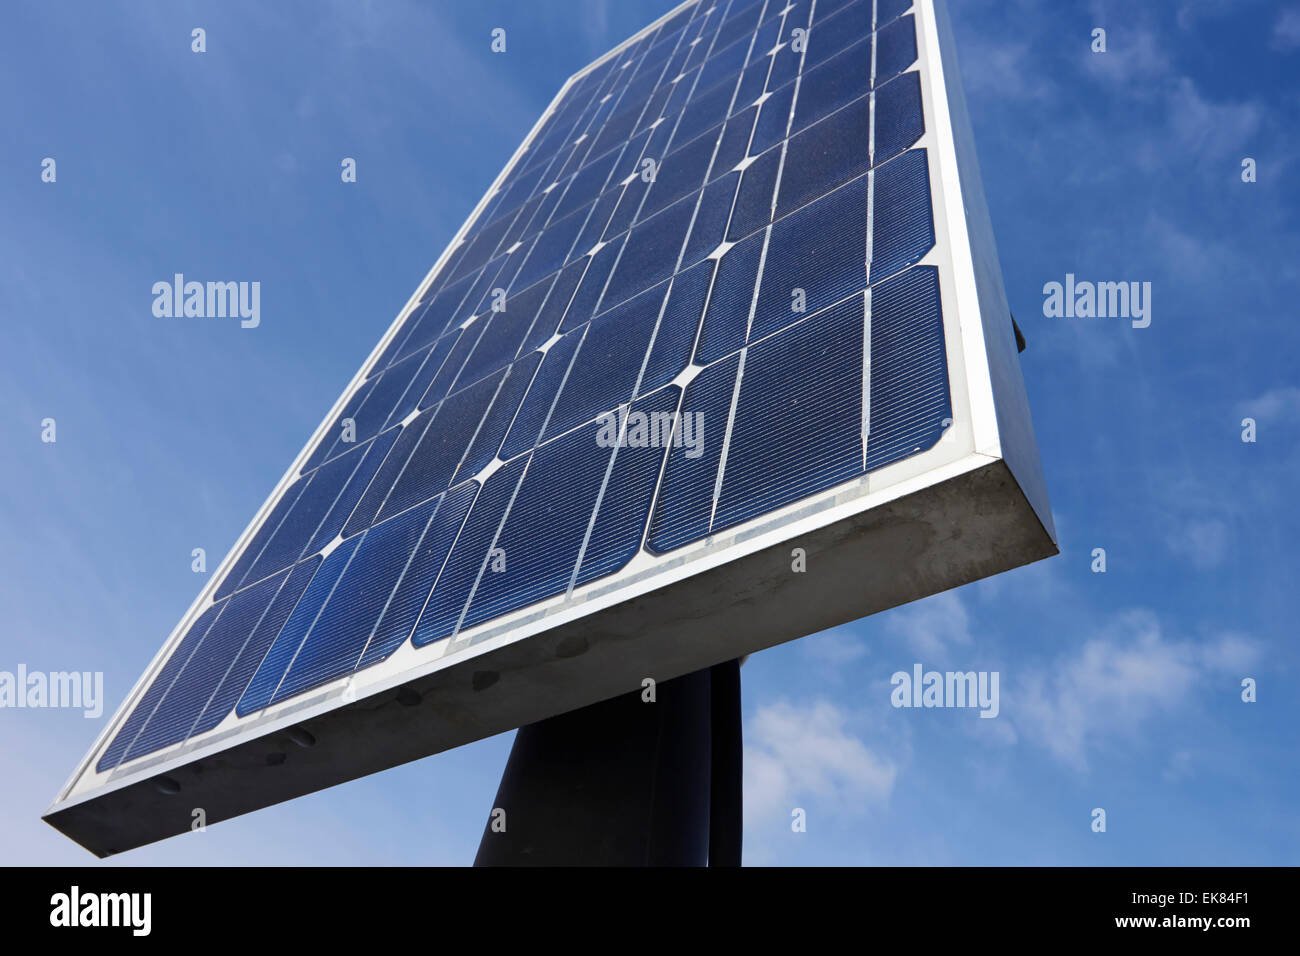 solar panels for electricity production, Finland - Stock Image